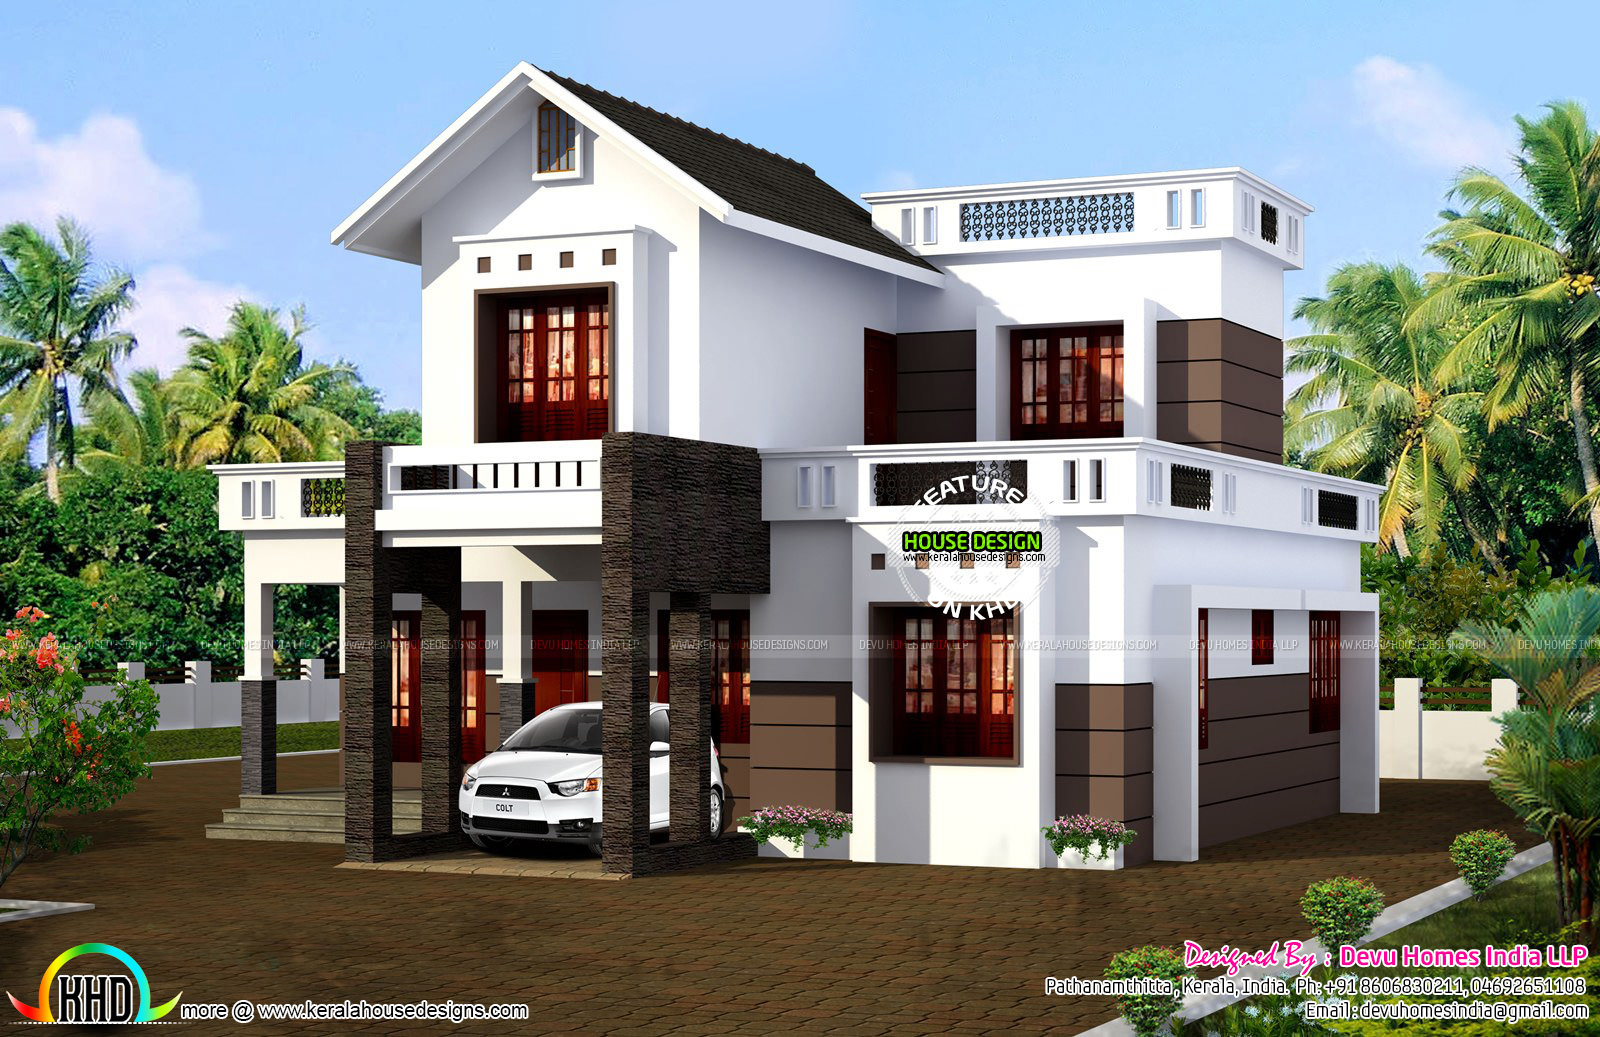 Simple 1524 sq ft house plan kerala home design and for Home designs 4 you